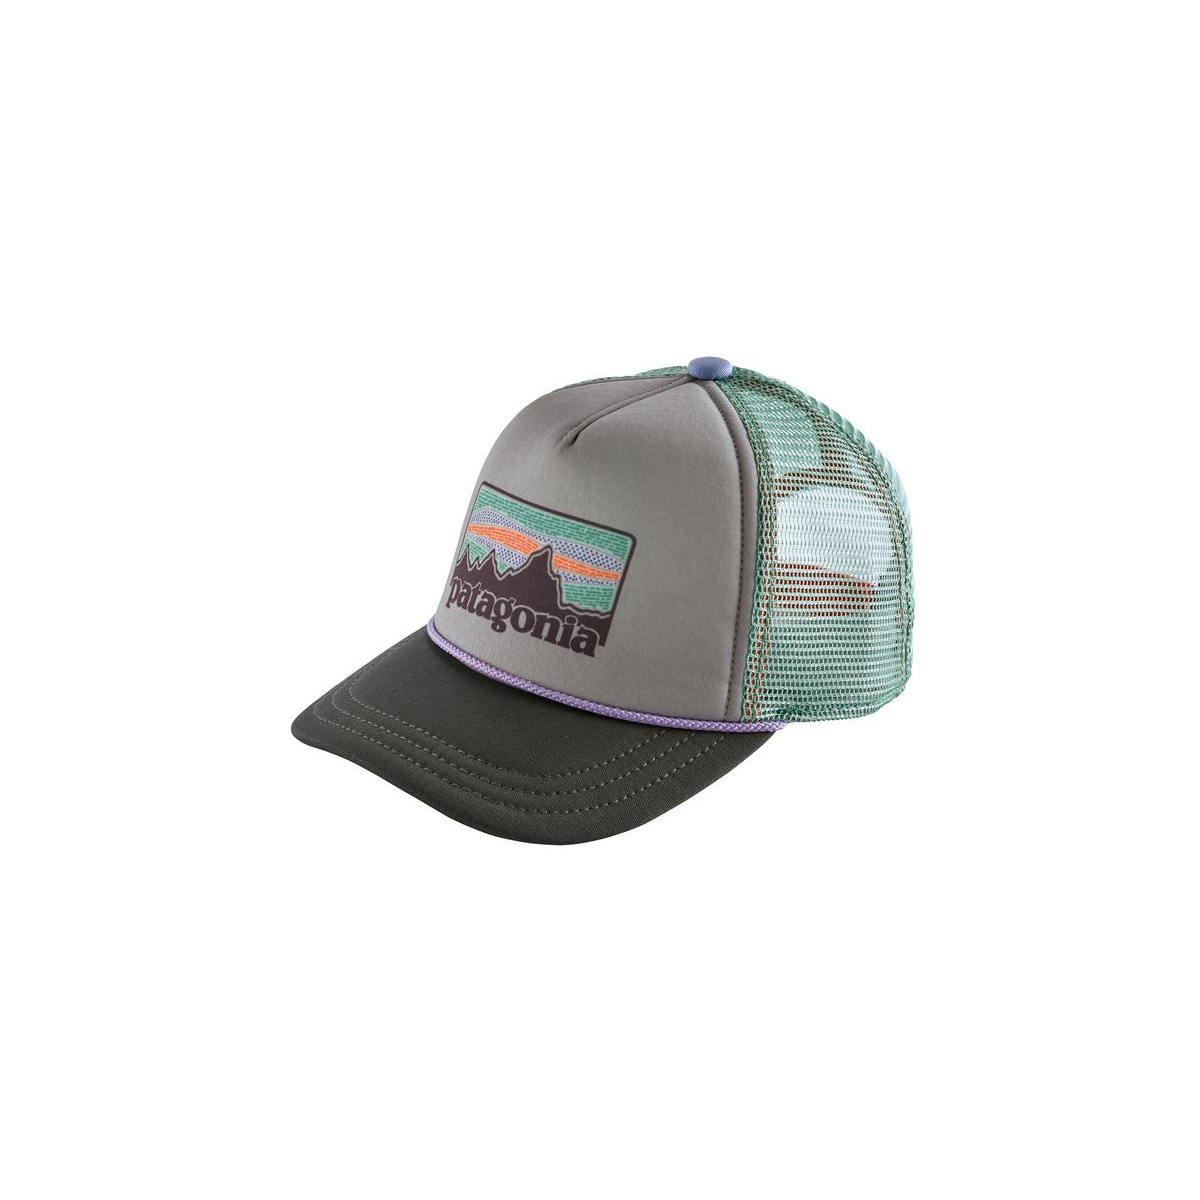 Patagonia K Interstate Hat - Gearhead Outfitters 94dd2ca50a37